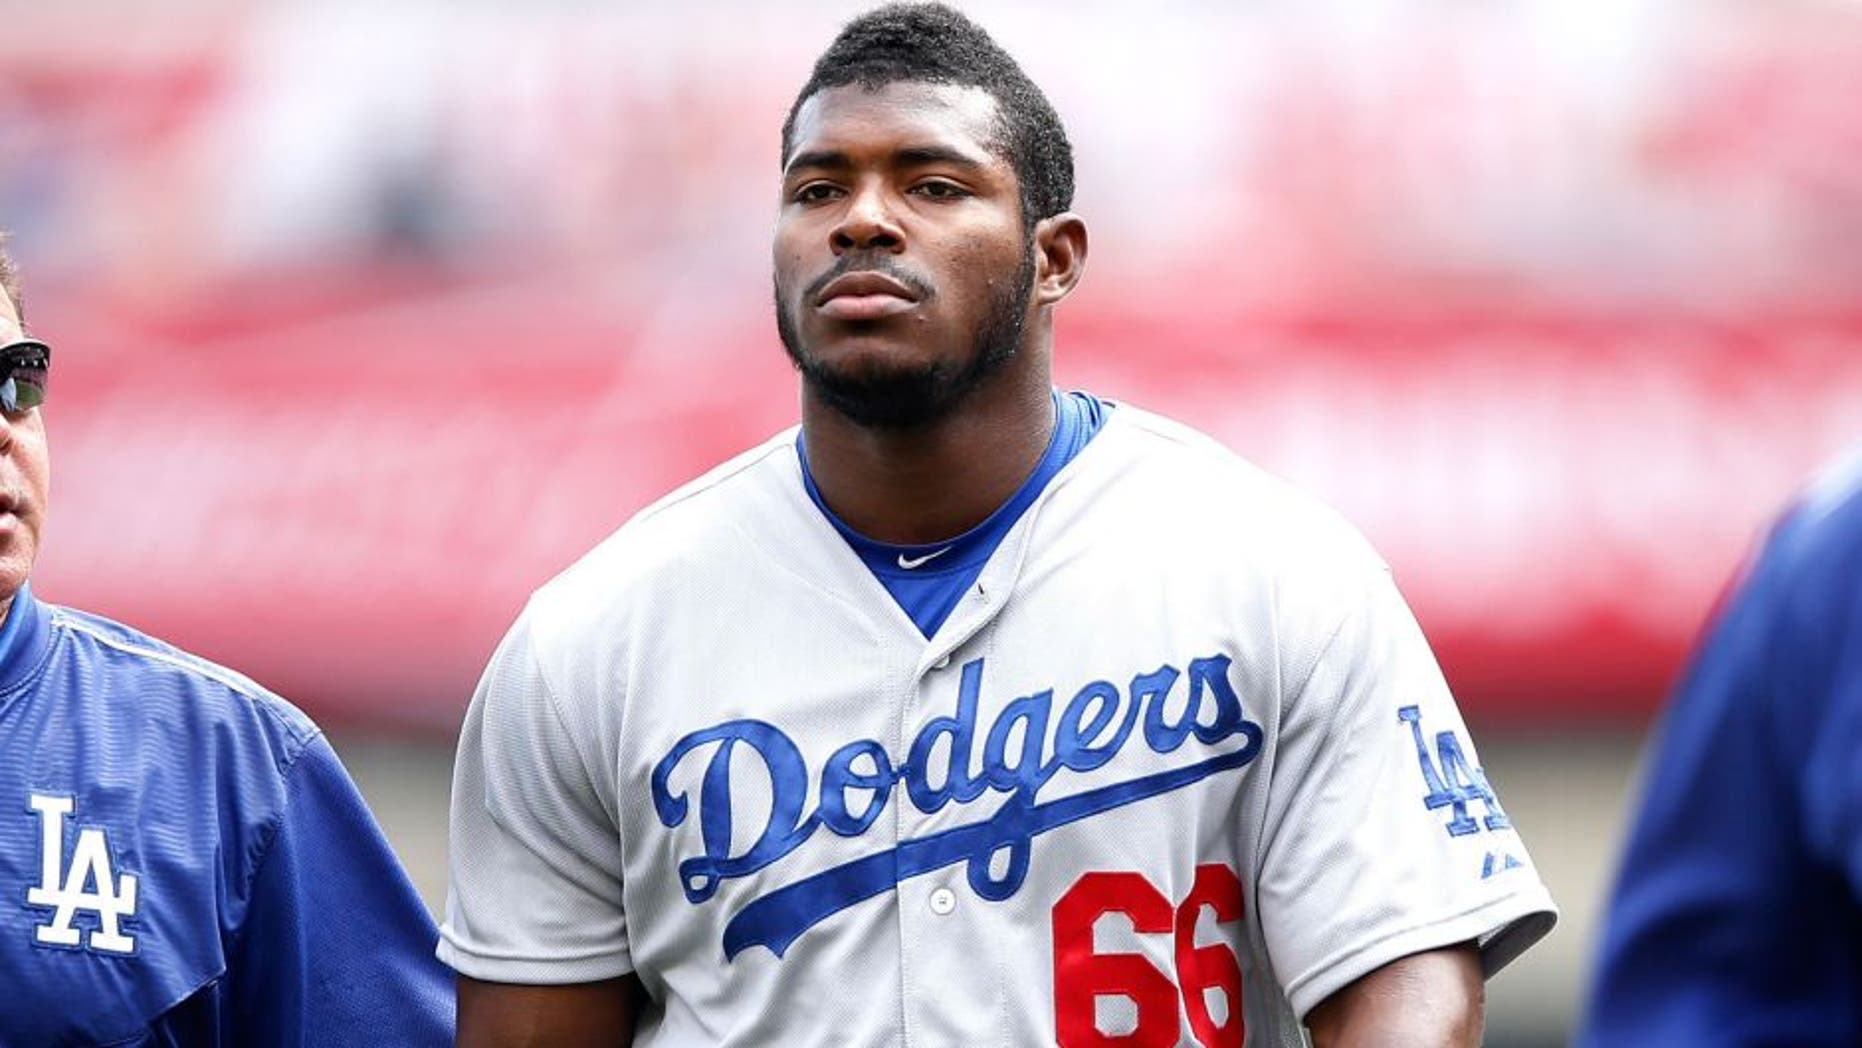 CINCINNATI, OH - AUGUST 27: Yasiel Puig #66 of the Los Angeles Dodgers walks off the field with director of medical services Stan Conte after suffering an injury during the game against the Cincinnati Reds at Great American Ball Park on August 27, 2015 in Cincinnati, Ohio. The Dodgers defeated the Reds 1-0. (Photo by Joe Robbins/Getty Images)